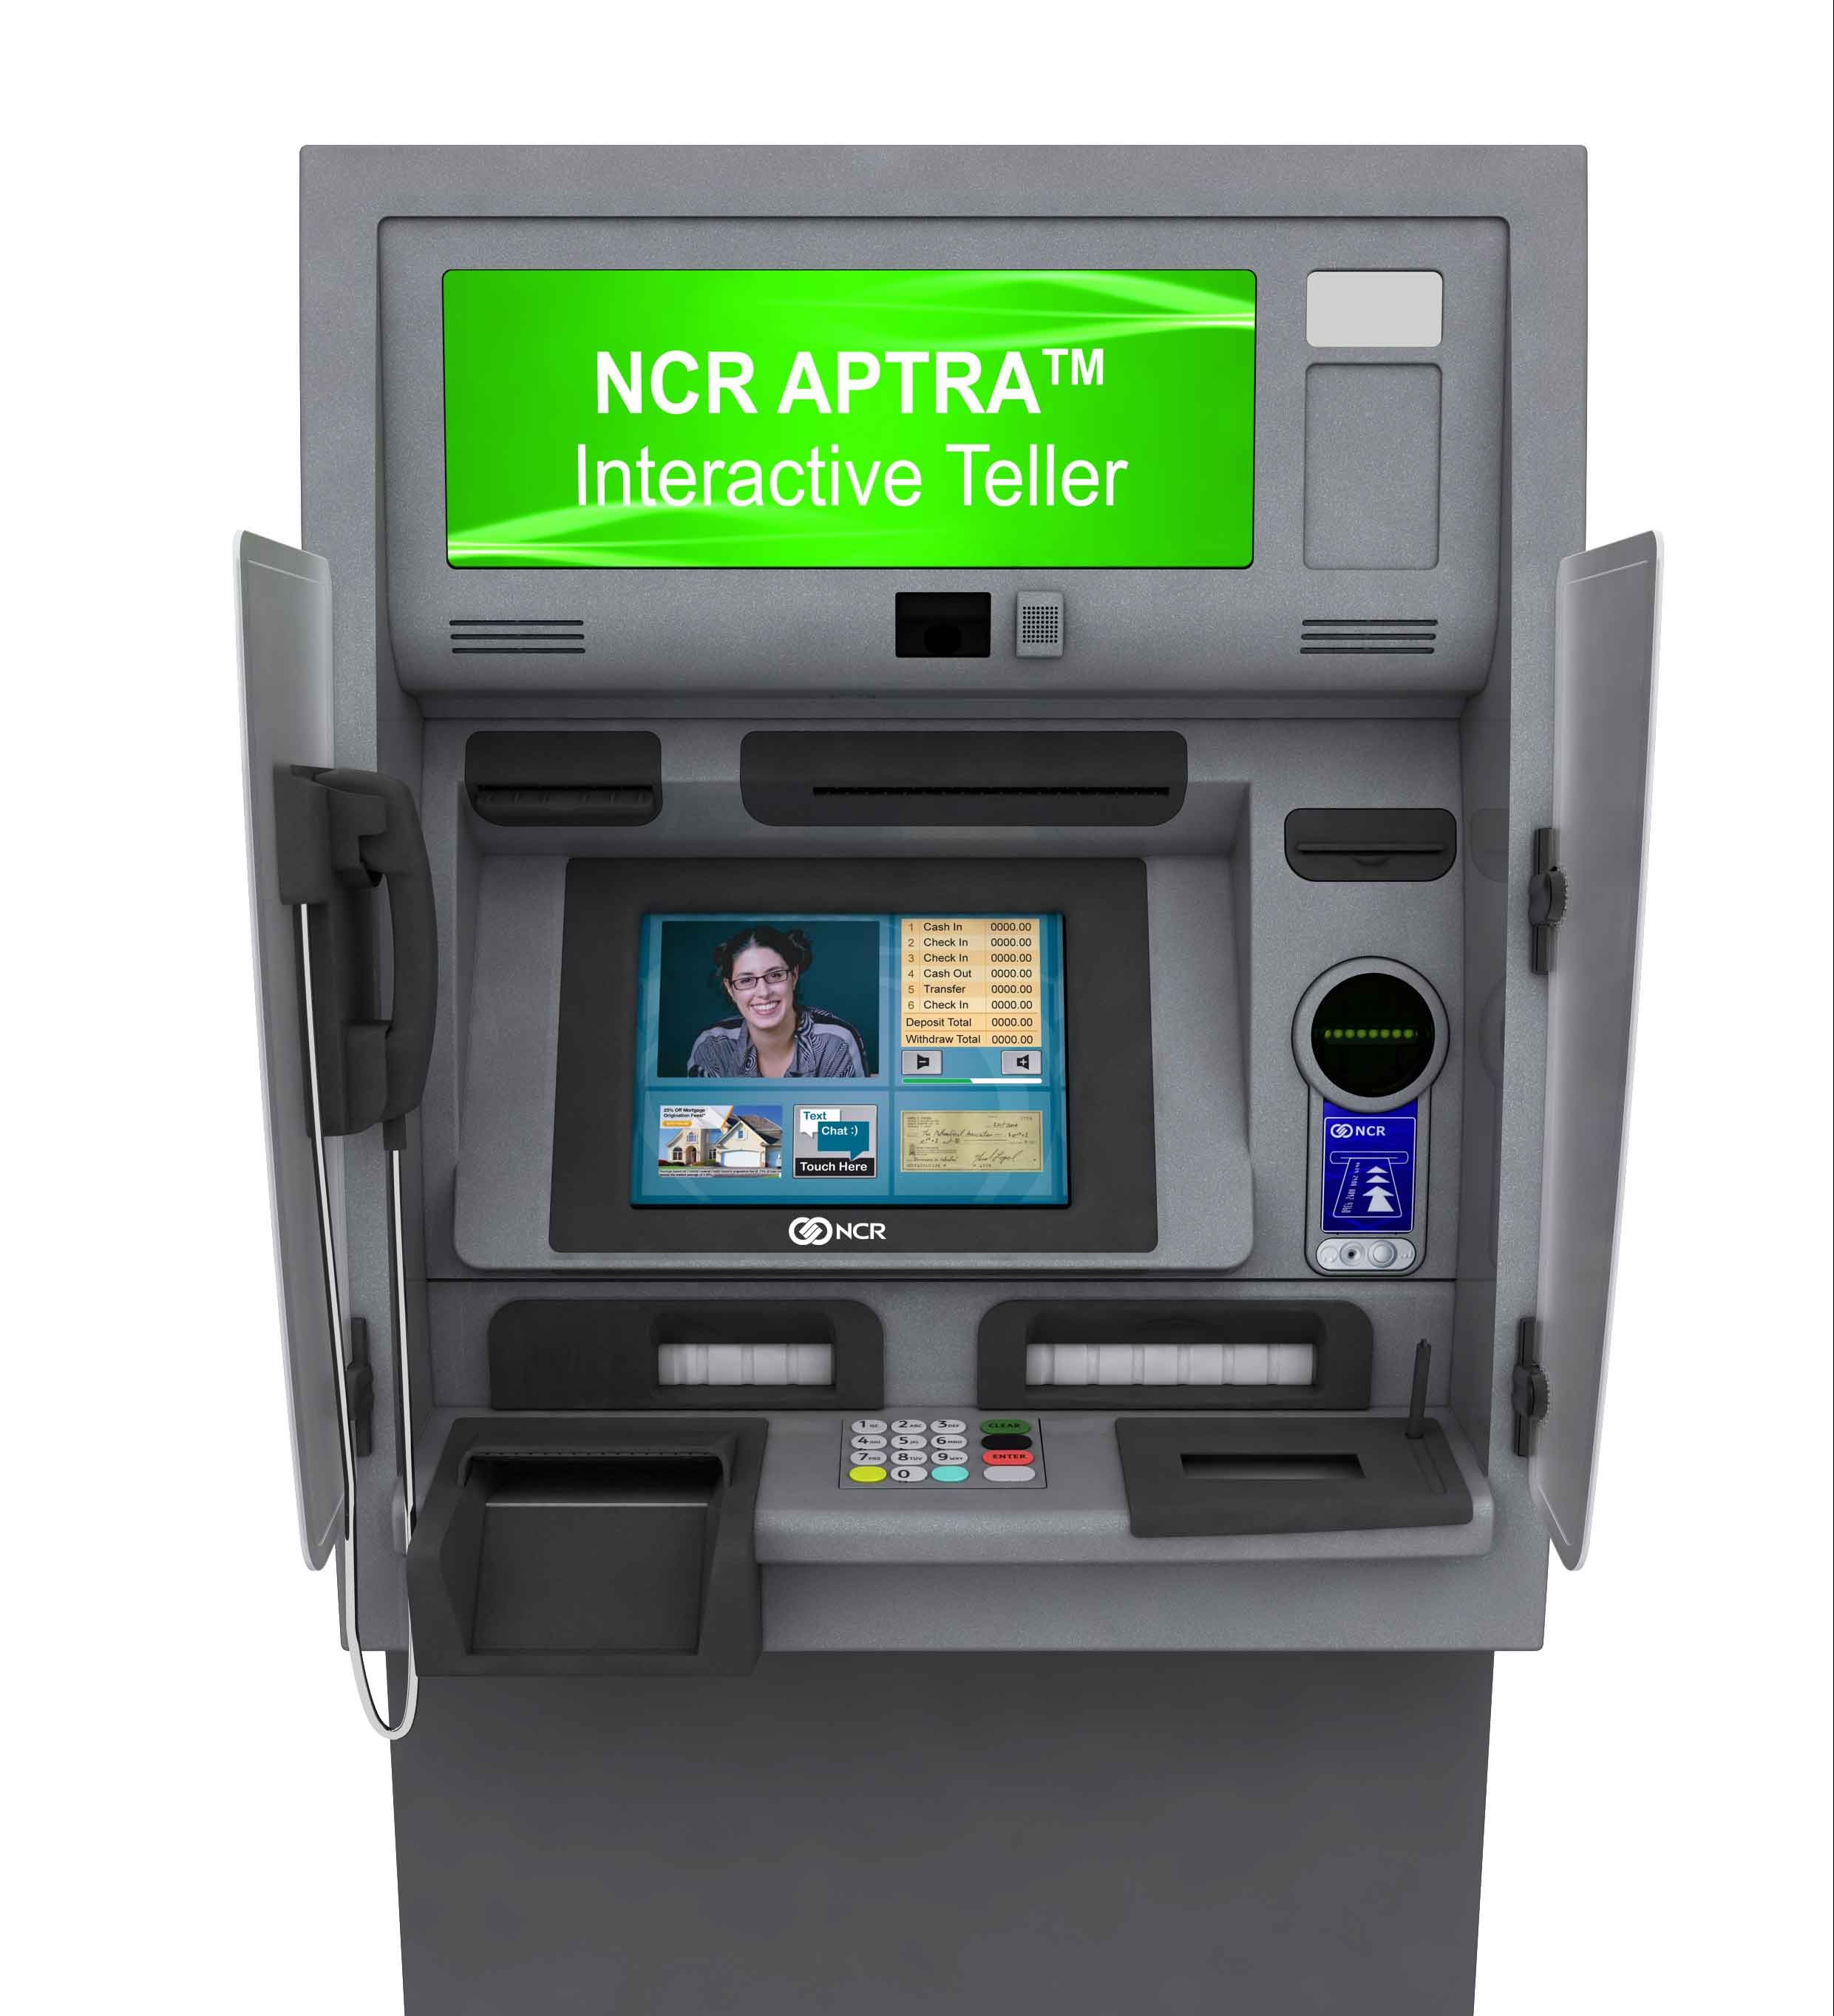 Atm machine system westinghouse tv problems basic residential wiring aptra interactive teller machine get one now fedcorp ncr aptra interactive teller us front on e1449000058701 aptra interactive teller machine atm machine cheapraybanclubmaster Image collections